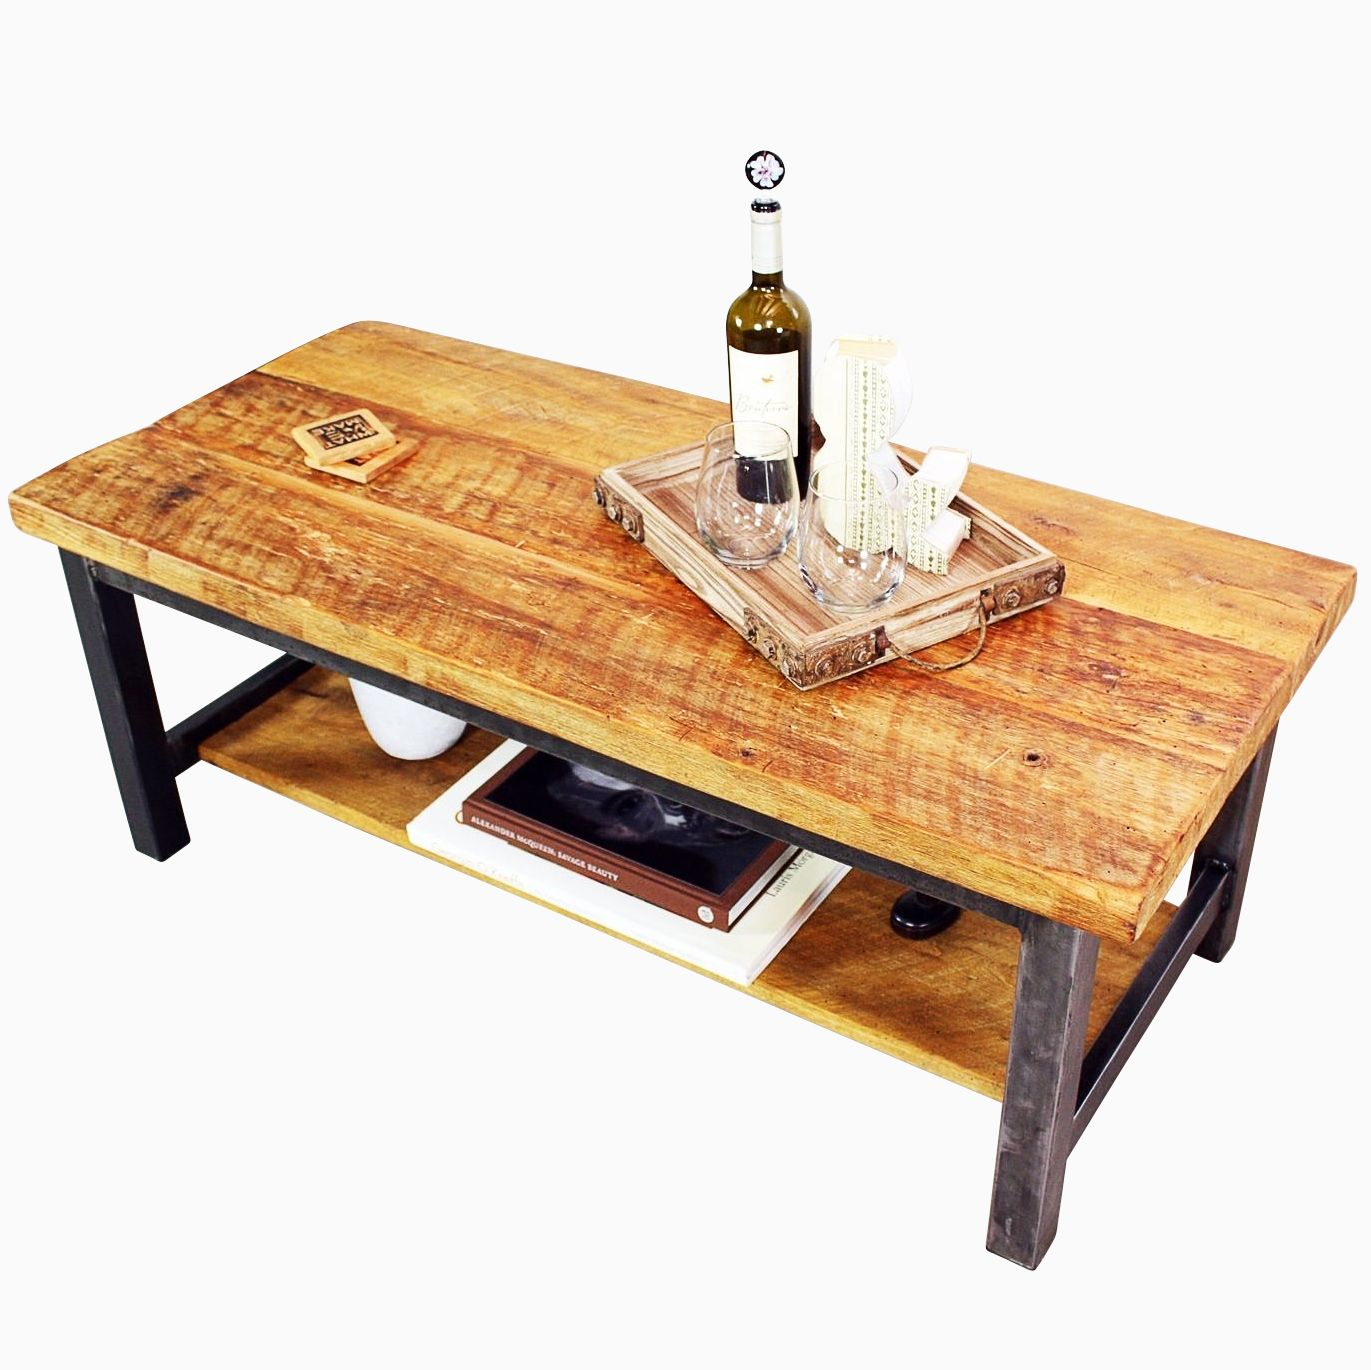 Buy A Hand Crafted Reclaimed Timber Coffee Table, Made To